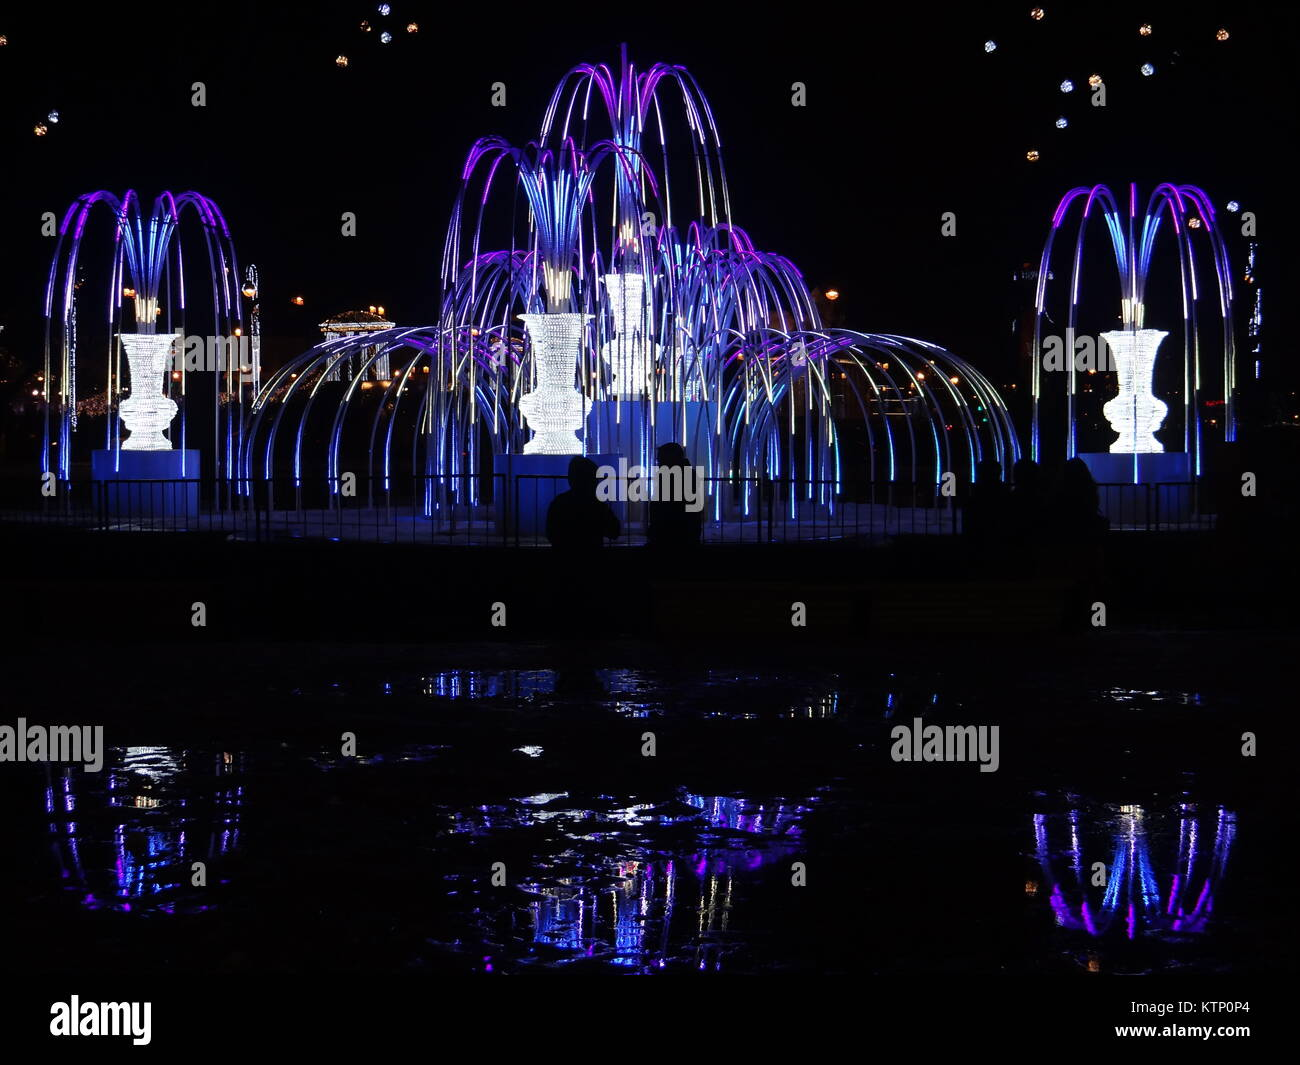 St Petersburg, Russia. 28th Dec, 2017. St Petersburg illuminated for the New Year 2018, St.Petersburg, Russia Credit: Stock Photo